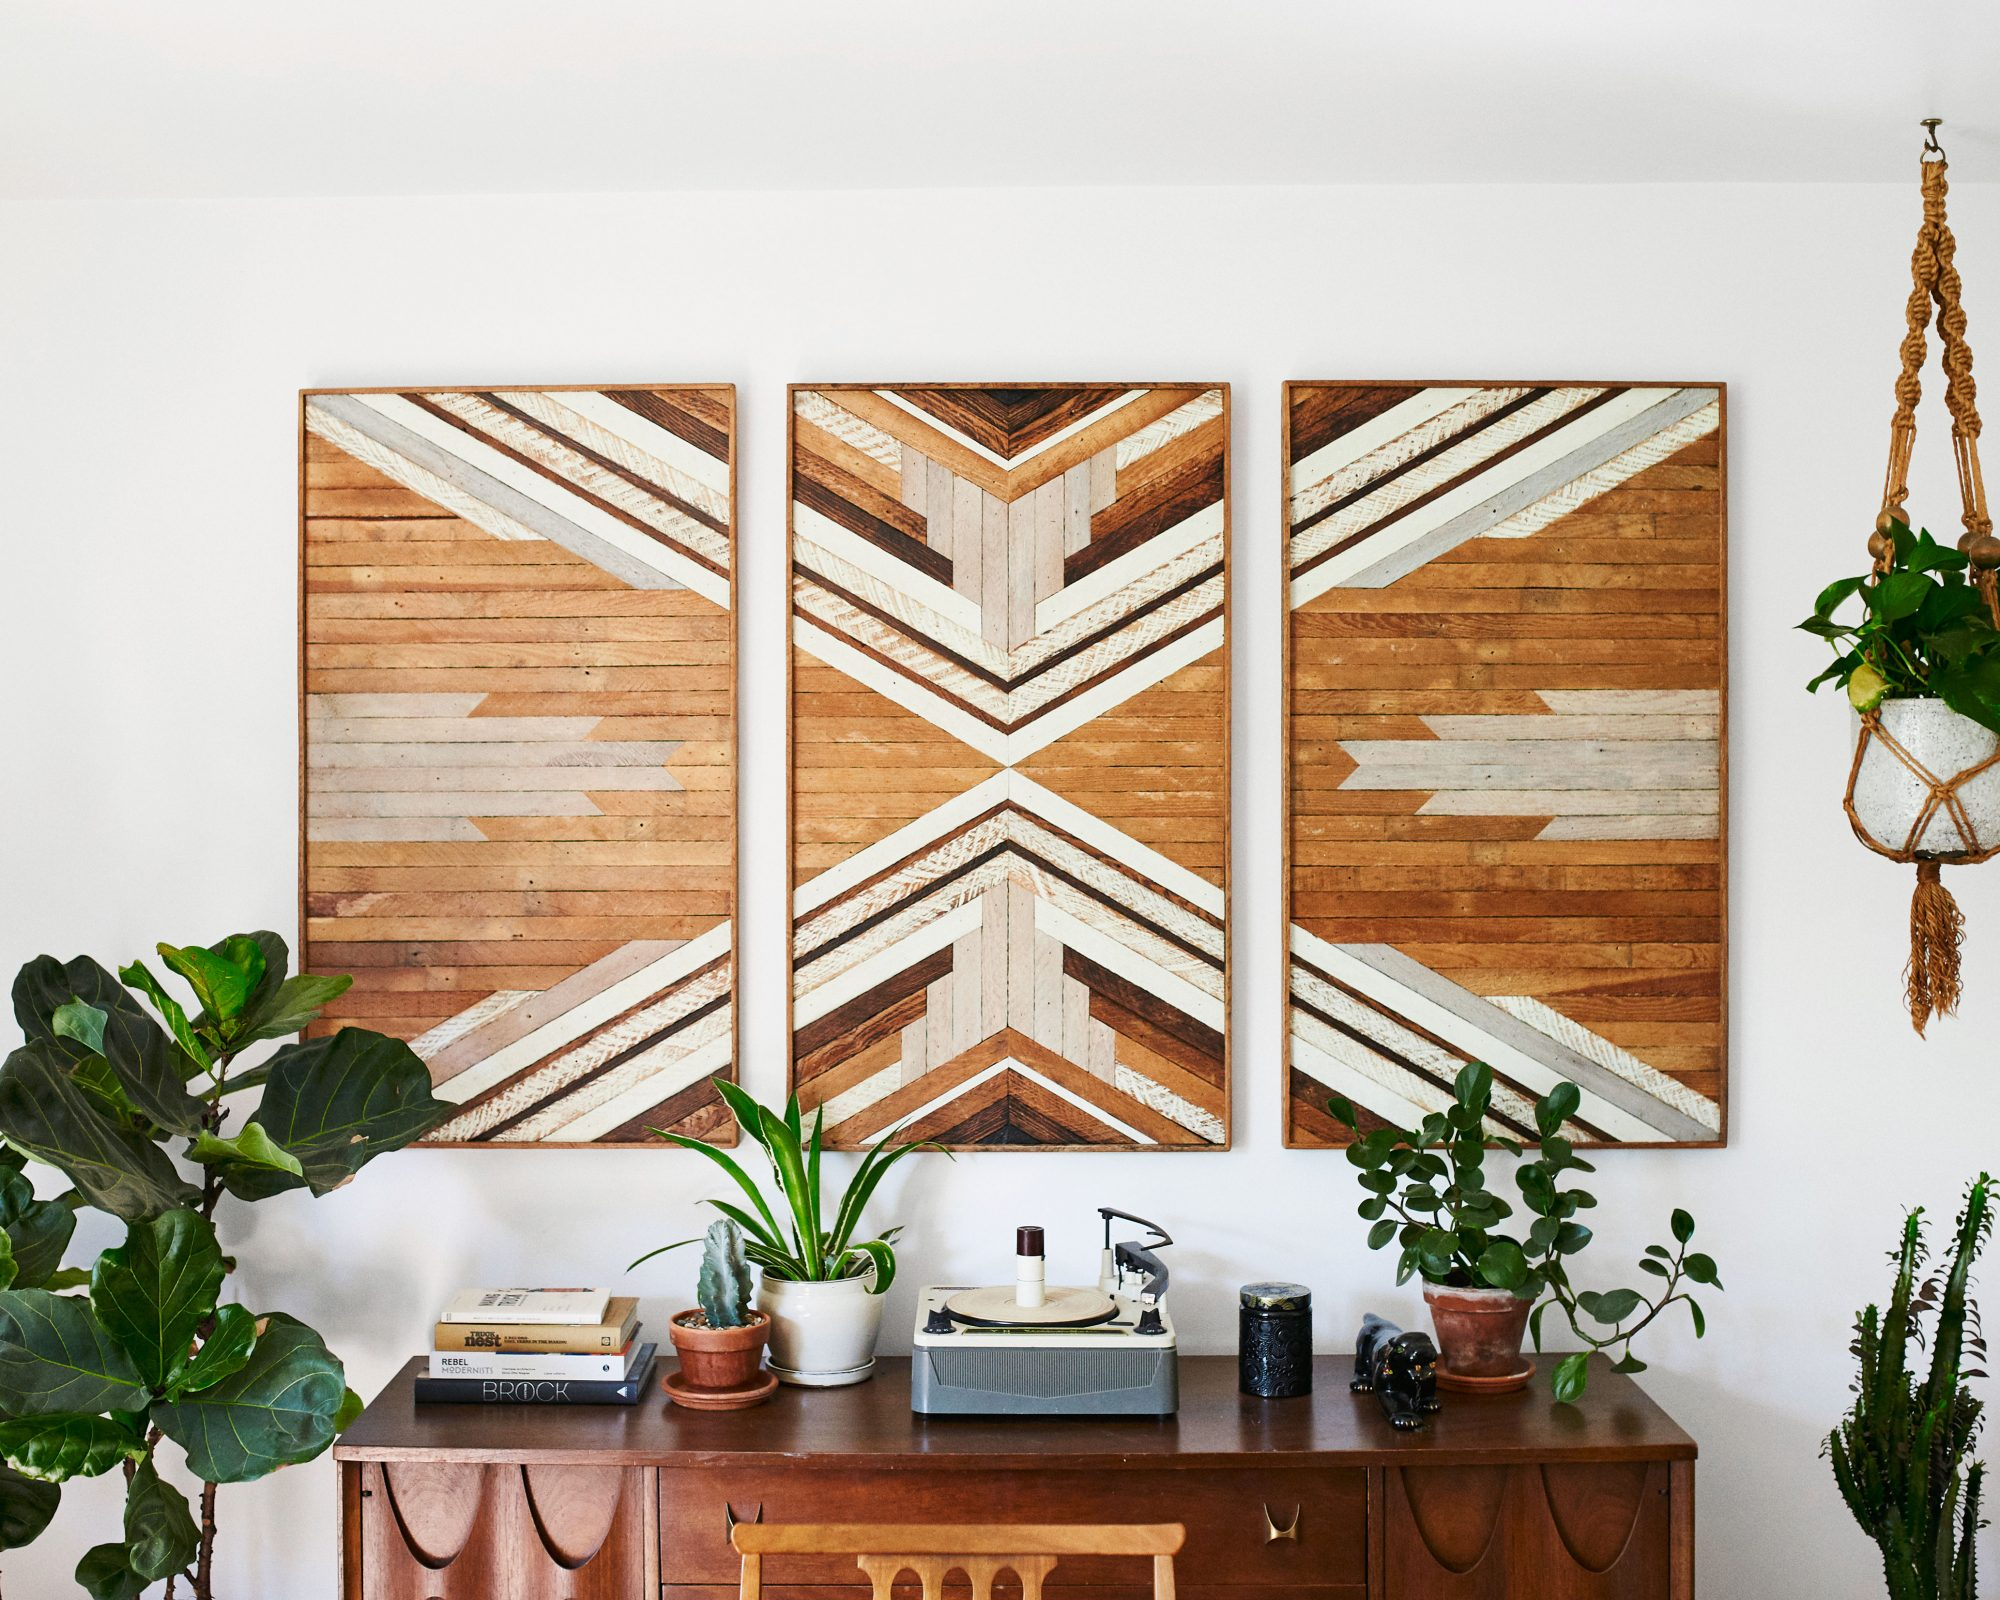 Large Reclaimed Wood Artwork from 1767 Designs